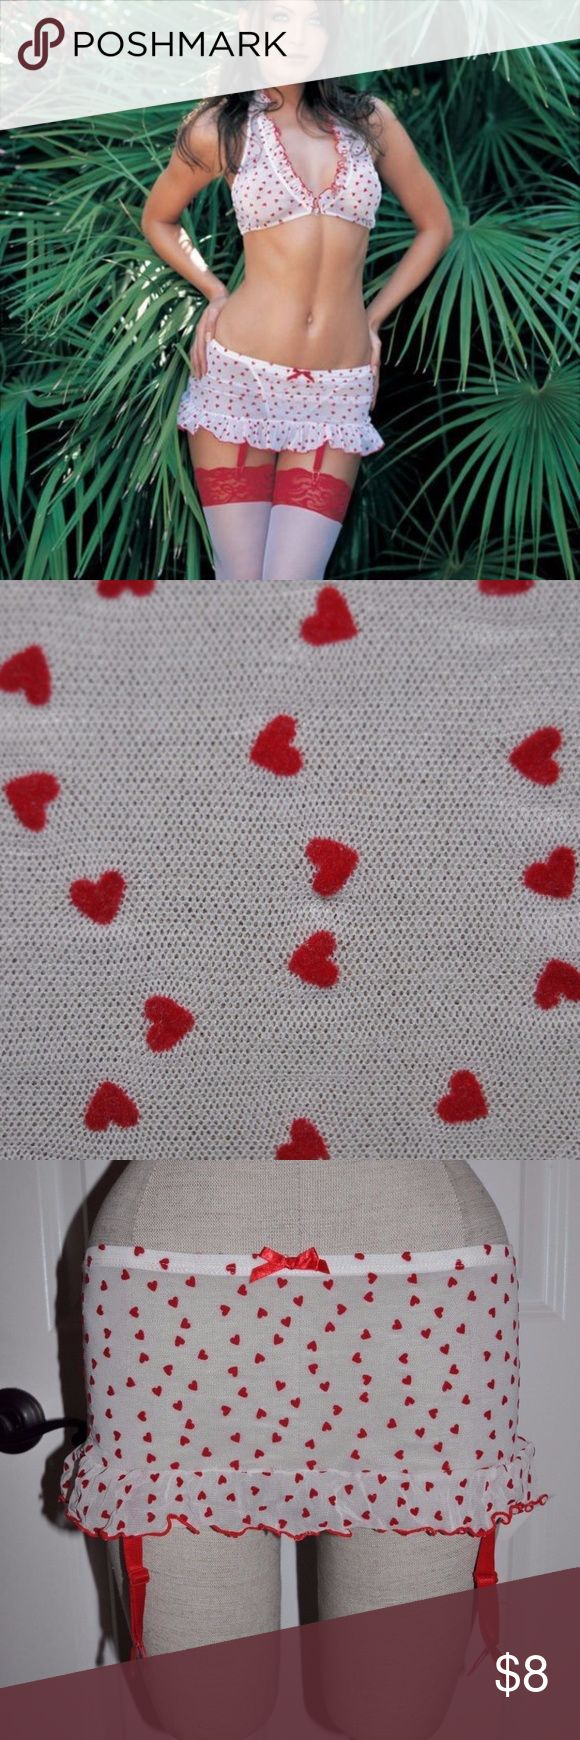 LEG AVENUE Mesh Flocked Heart Garter Belt Skirt A3 size S/M condition: gently used color: white/red  flocked hearts sheer mesh ruffle hem attached garters **skirt only. no top, stockings or panties @cjrose25  Valentine's day Leg Avenue Intimates & Sleepwear